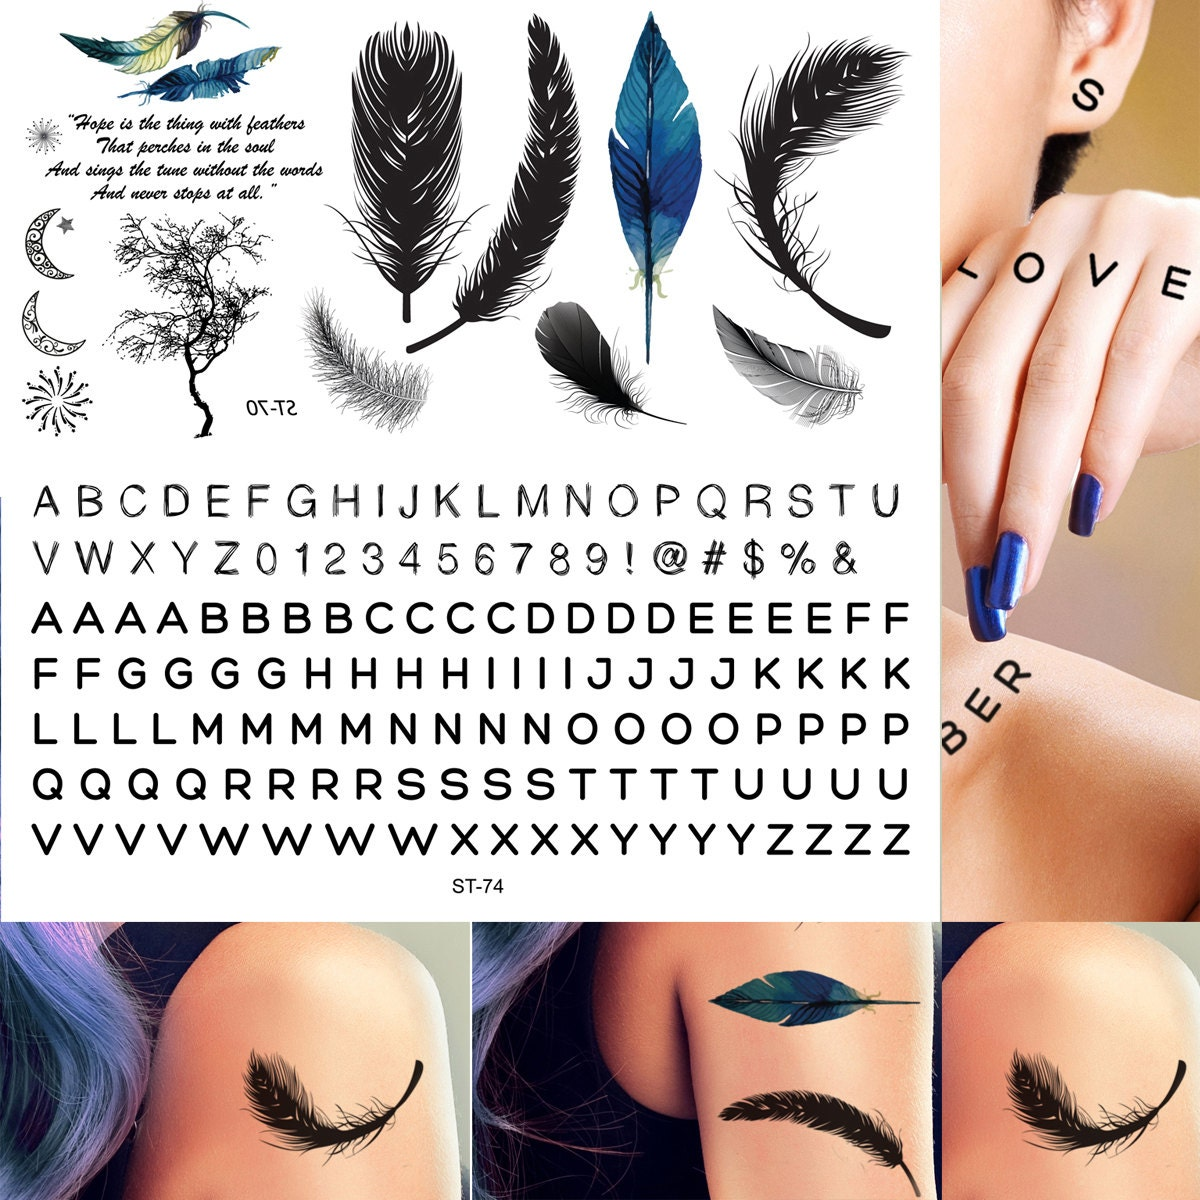 Supperb Temporary Tattoos Classic Feather Hand Lettering Etsy